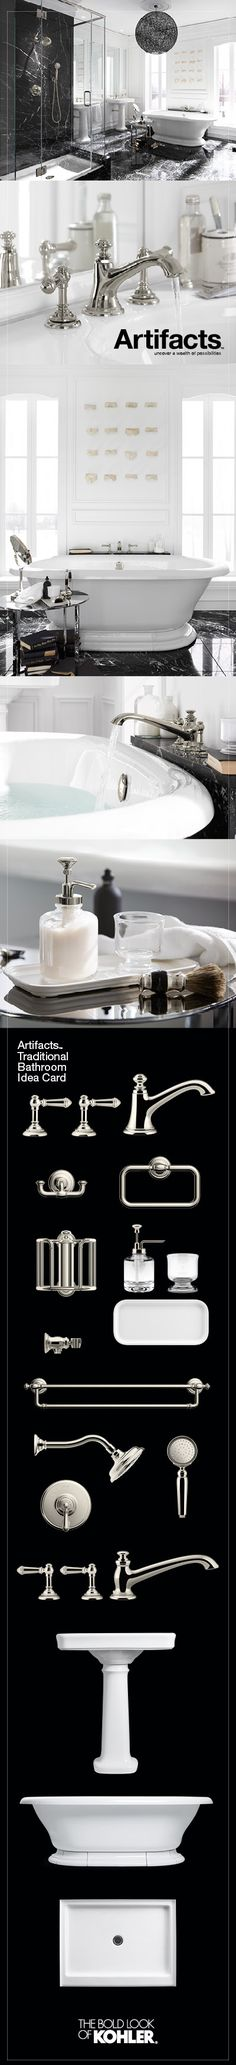 Create a look all your own with the Kohler Artifacts collection. Timeless and classic in its inspiration. #FindArtifacts black and white bathroom